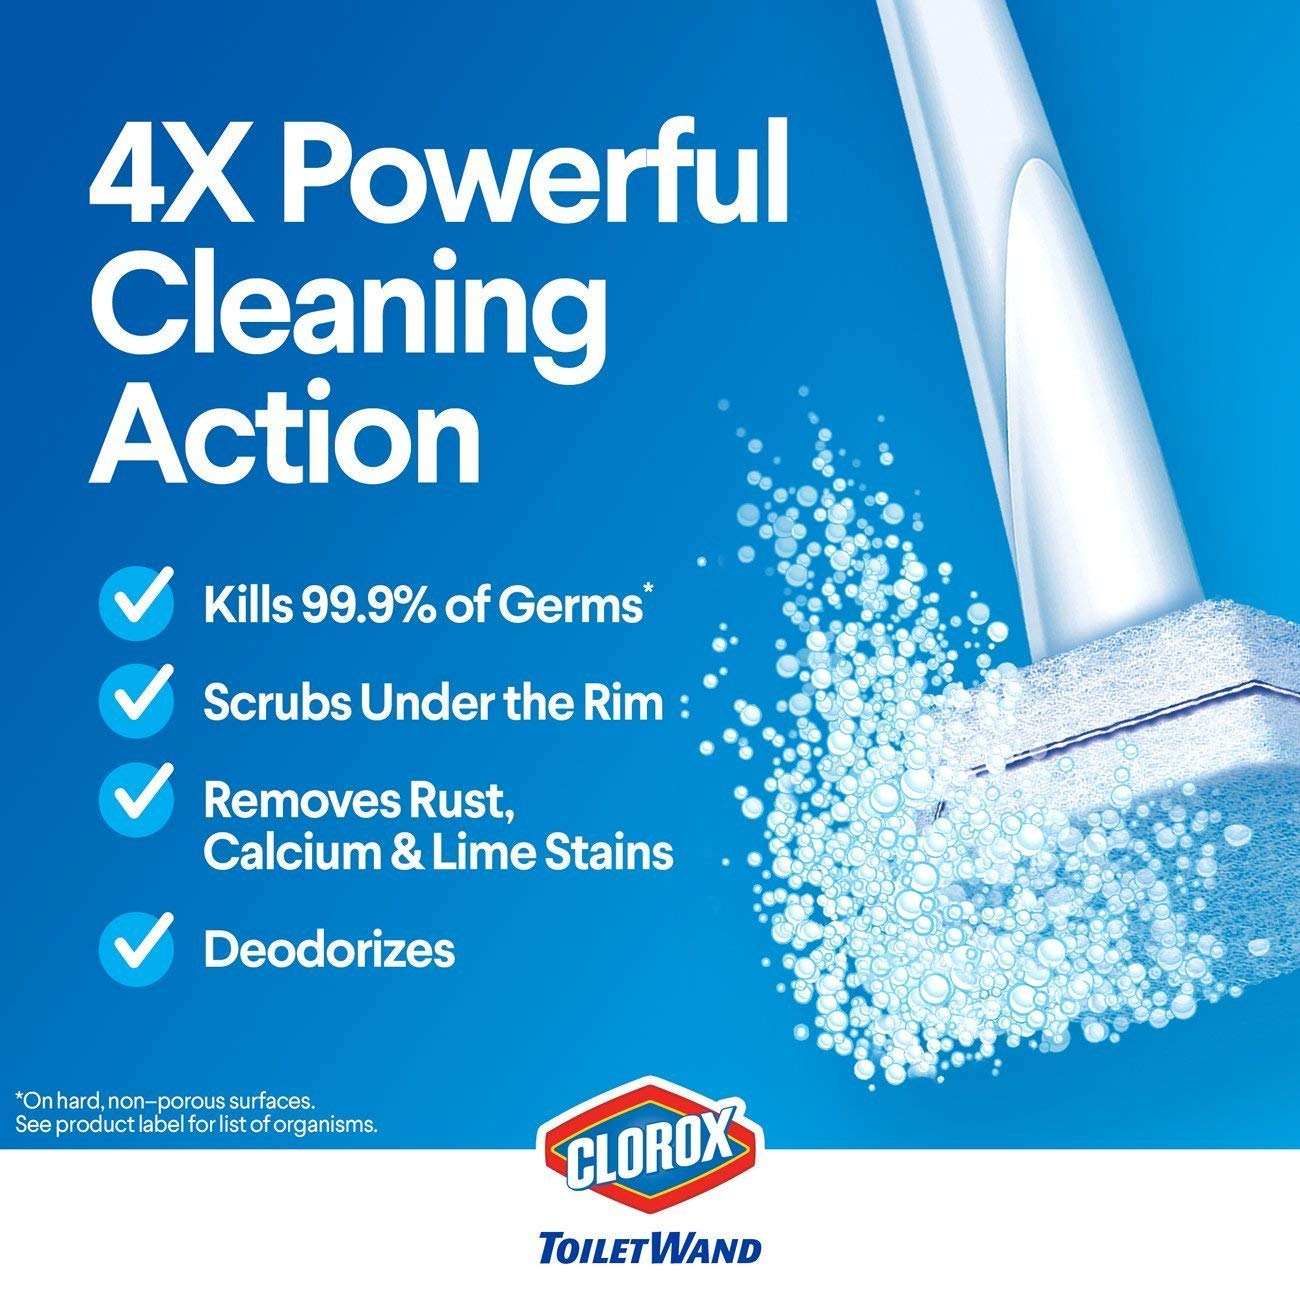 Clorox ToiletWand Disinfecting Refills, Disposable Wand Heads - 30 Count - 5 Pack by Clorox Toilet Wand (Image #6)